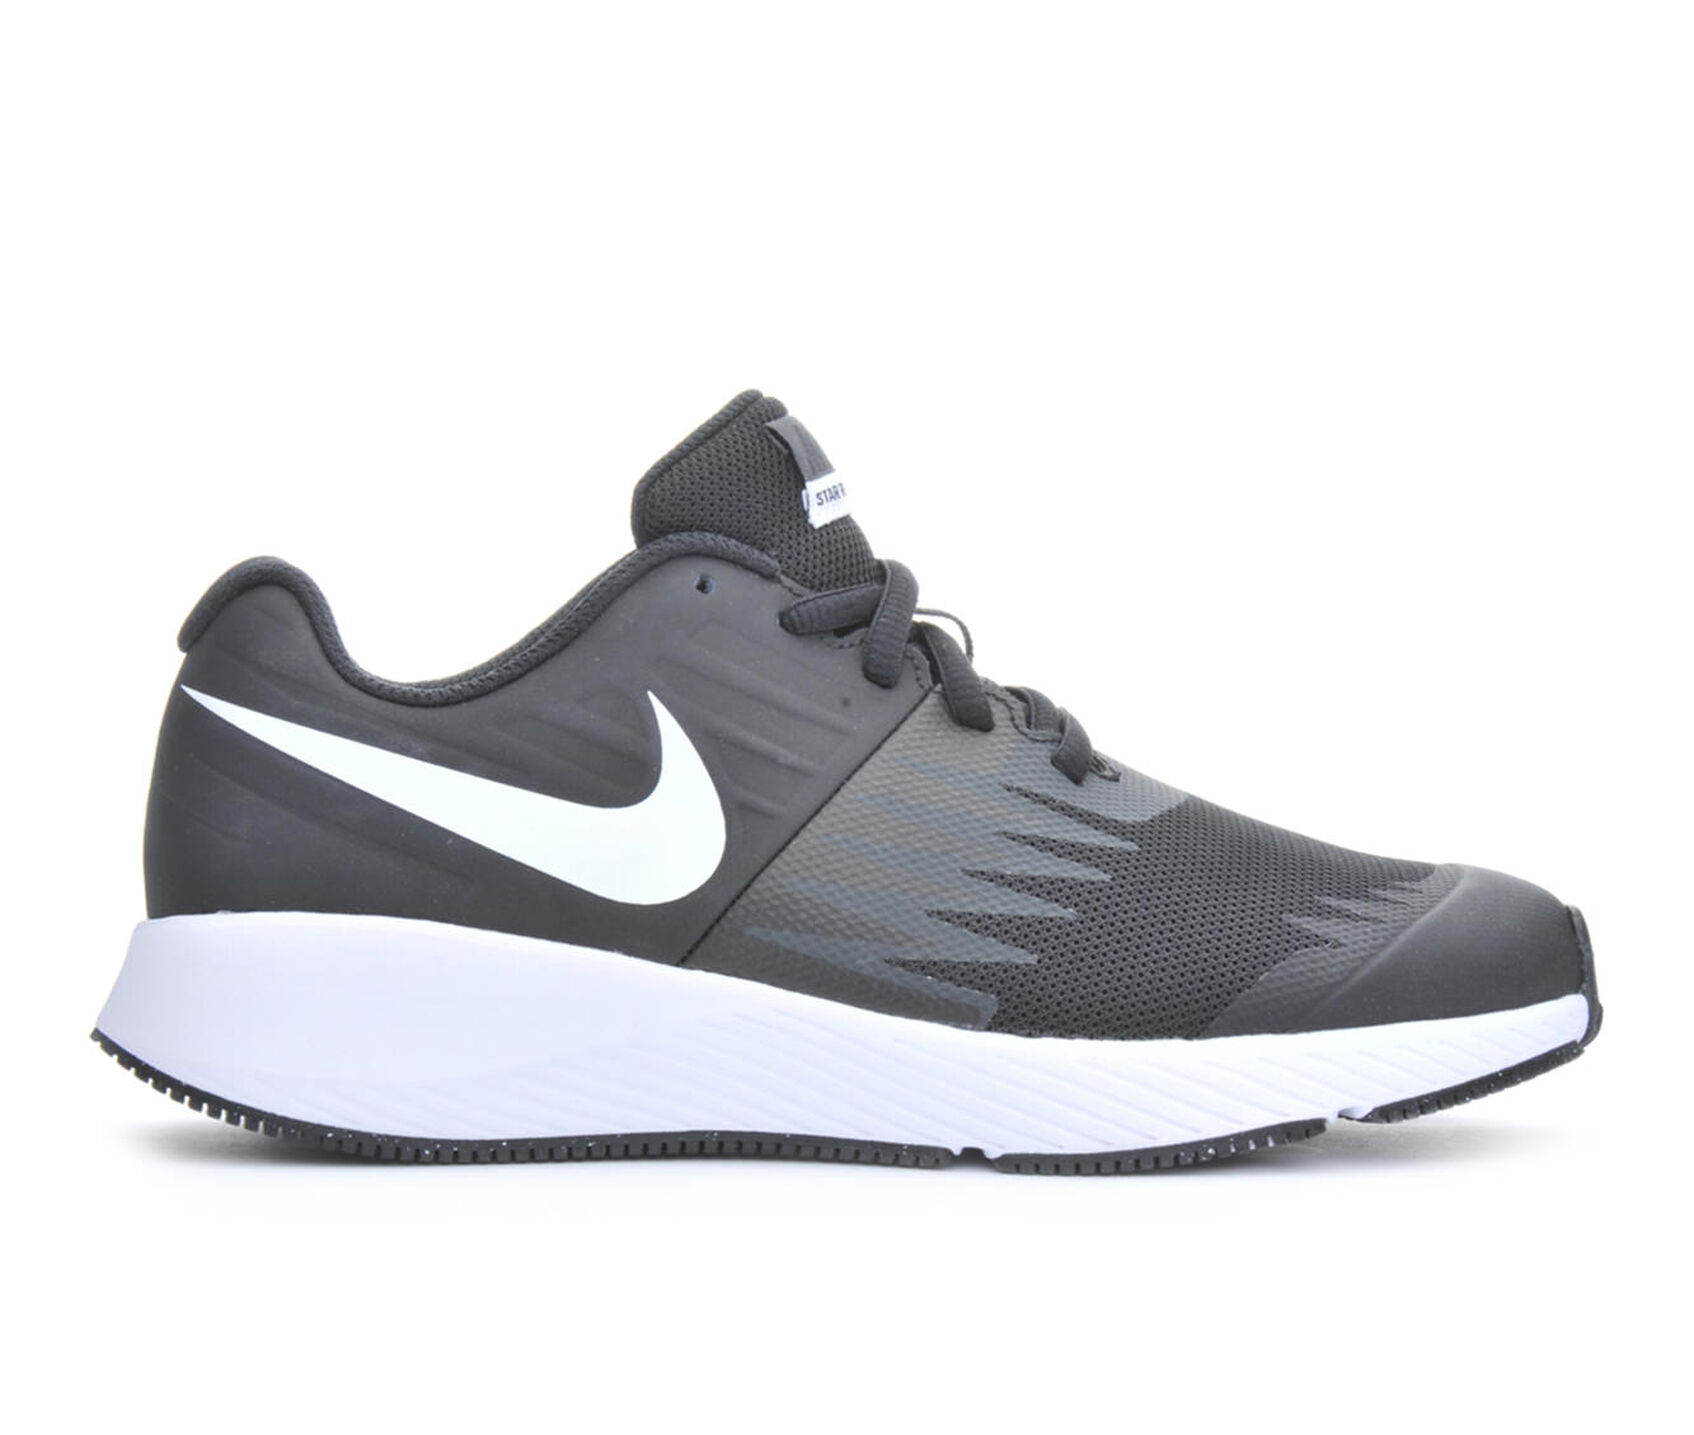 79d8e27652e ... Nike Big Kid Star Runner Running Shoes. Previous